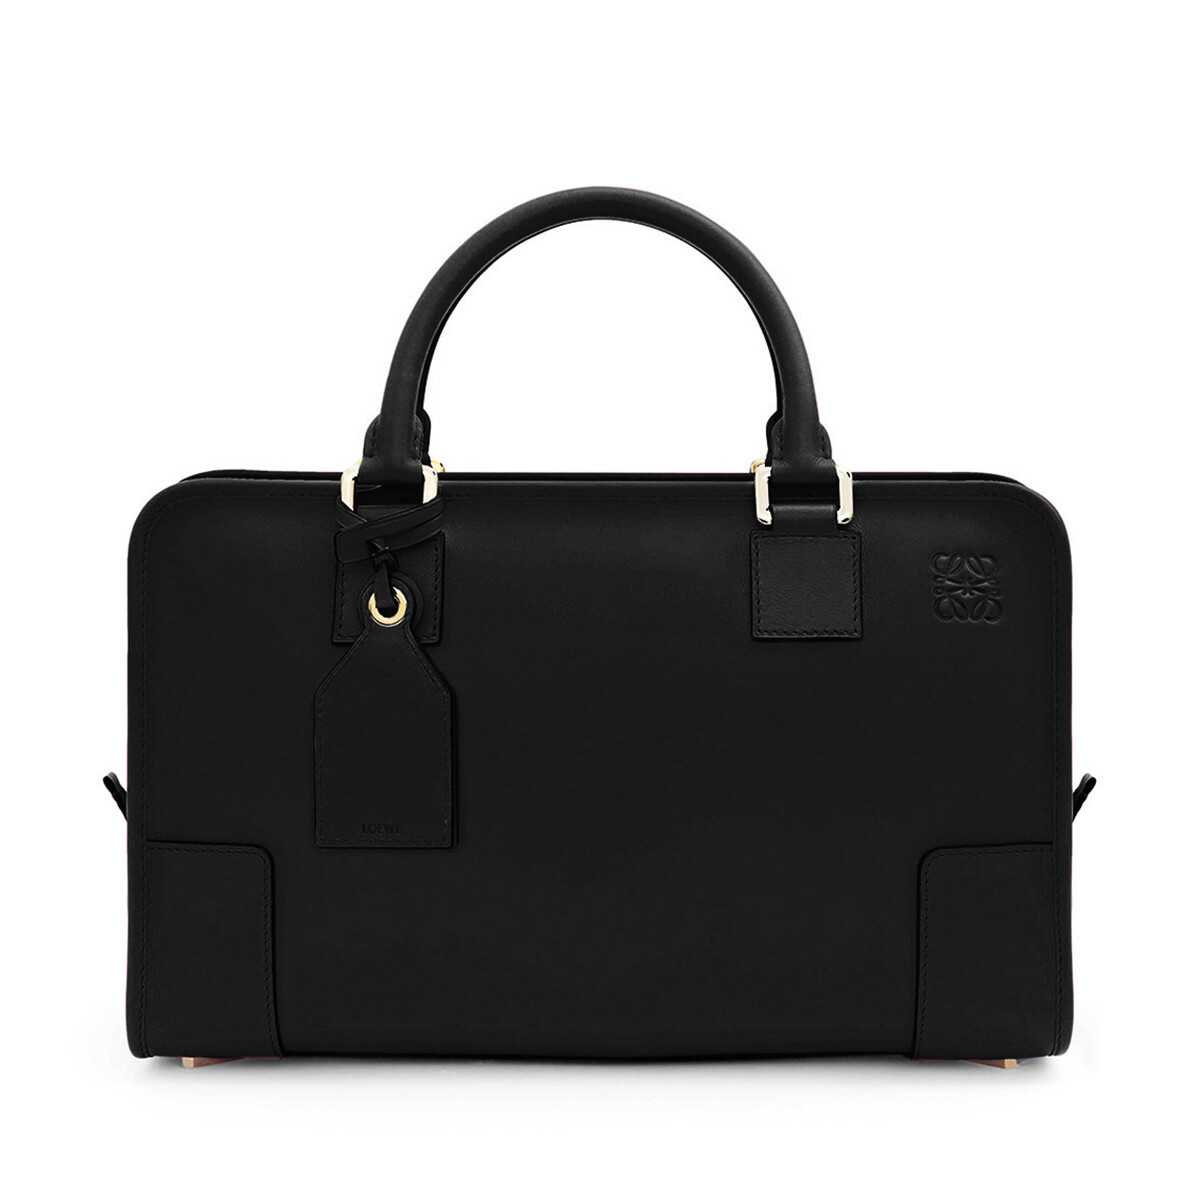 LOEWE Amazona Bag Black/Gold front